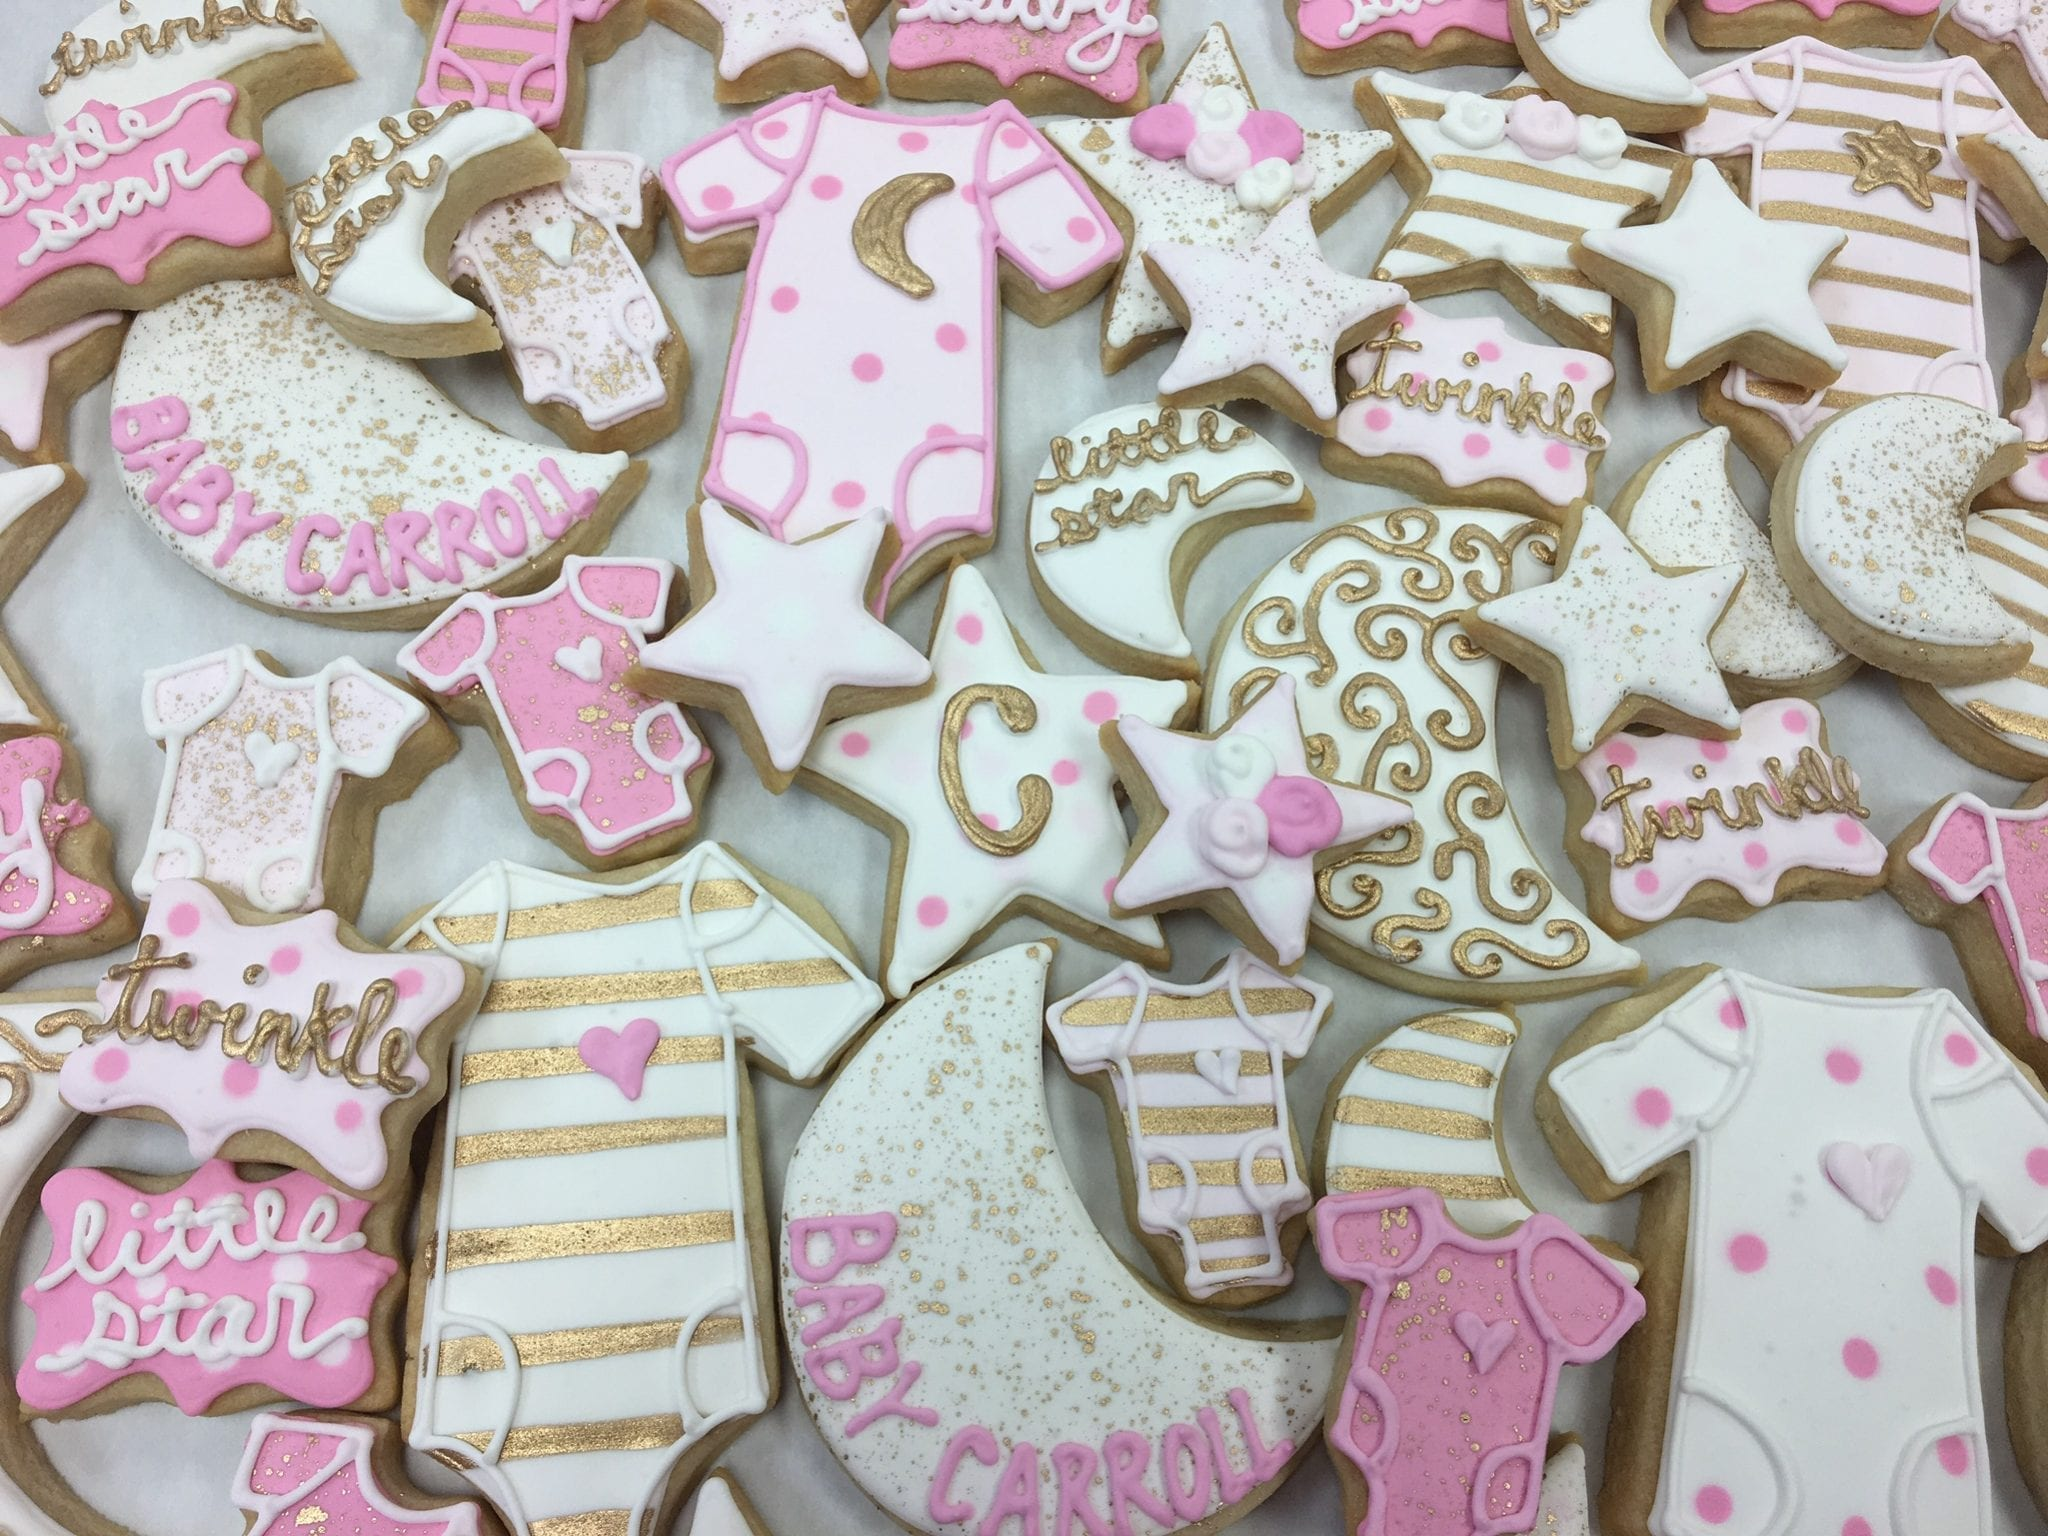 Twinkle Twinkle Little Star Cookies for Baby Shower | 3 Sweet Girls Cakery